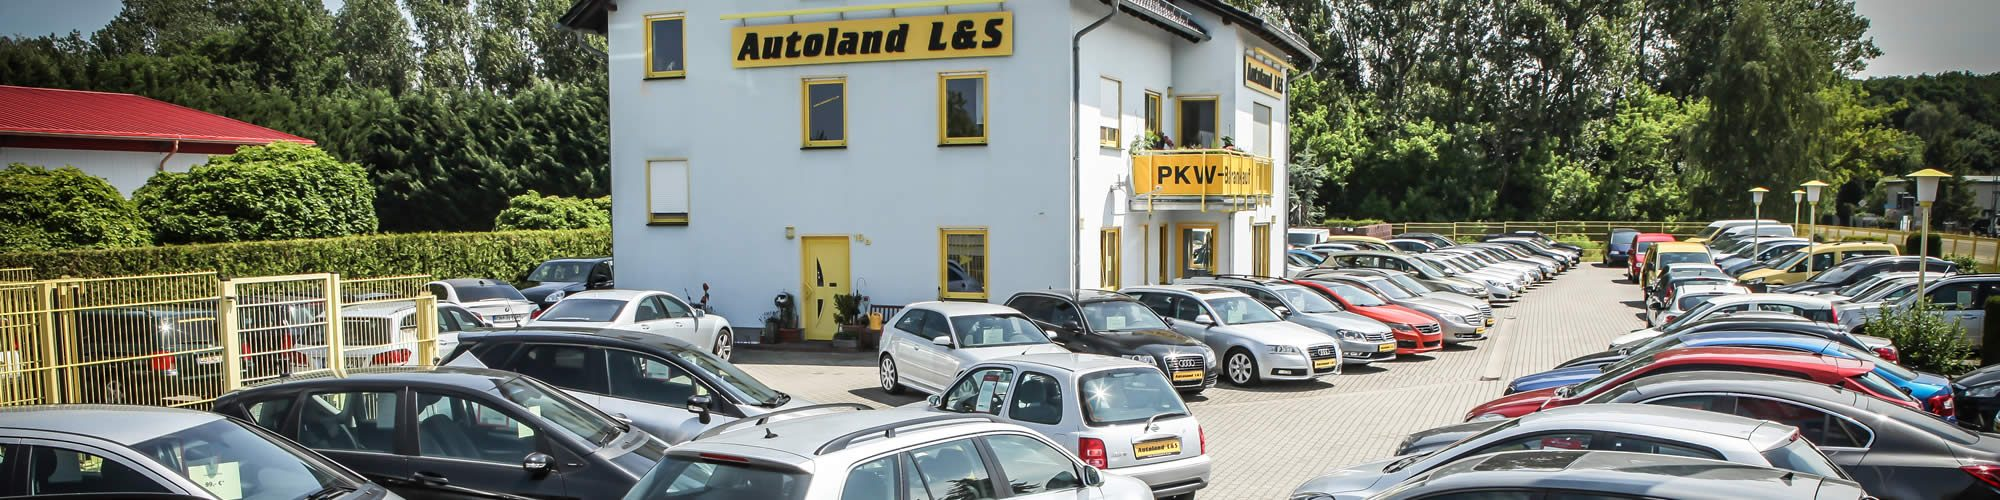 autoland l s autohaus f r gebrauchtwagen in cottbus. Black Bedroom Furniture Sets. Home Design Ideas